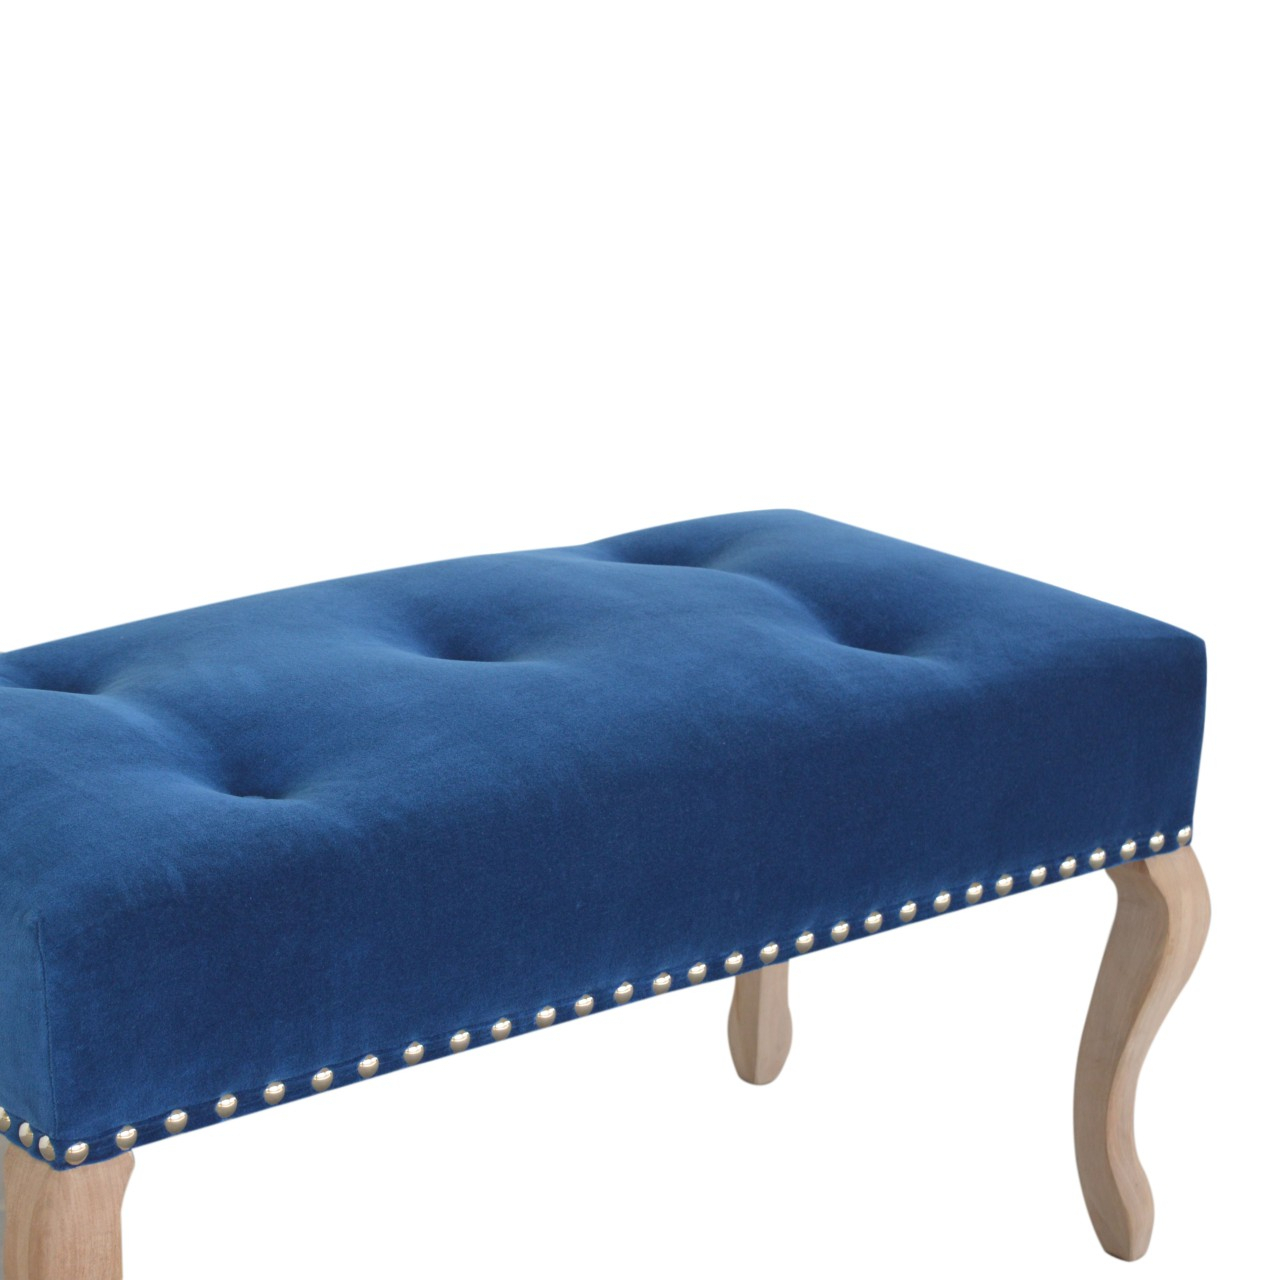 Wholesale French Style Royal Blue Velvet Bench, Dropship Pertaining To Artisan Blue Sofas (View 12 of 15)